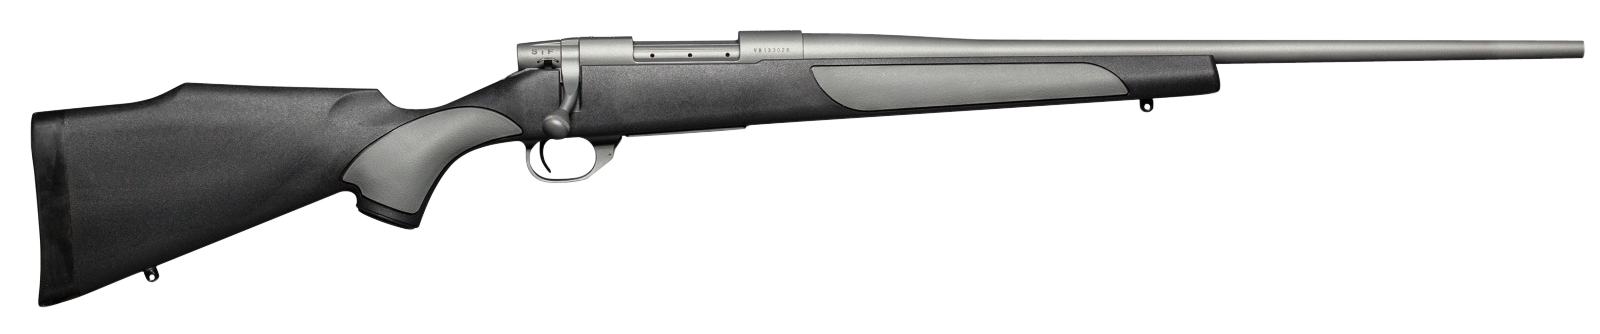 Weatherby Vanguard Weatherguard 240 Wby Mag 24